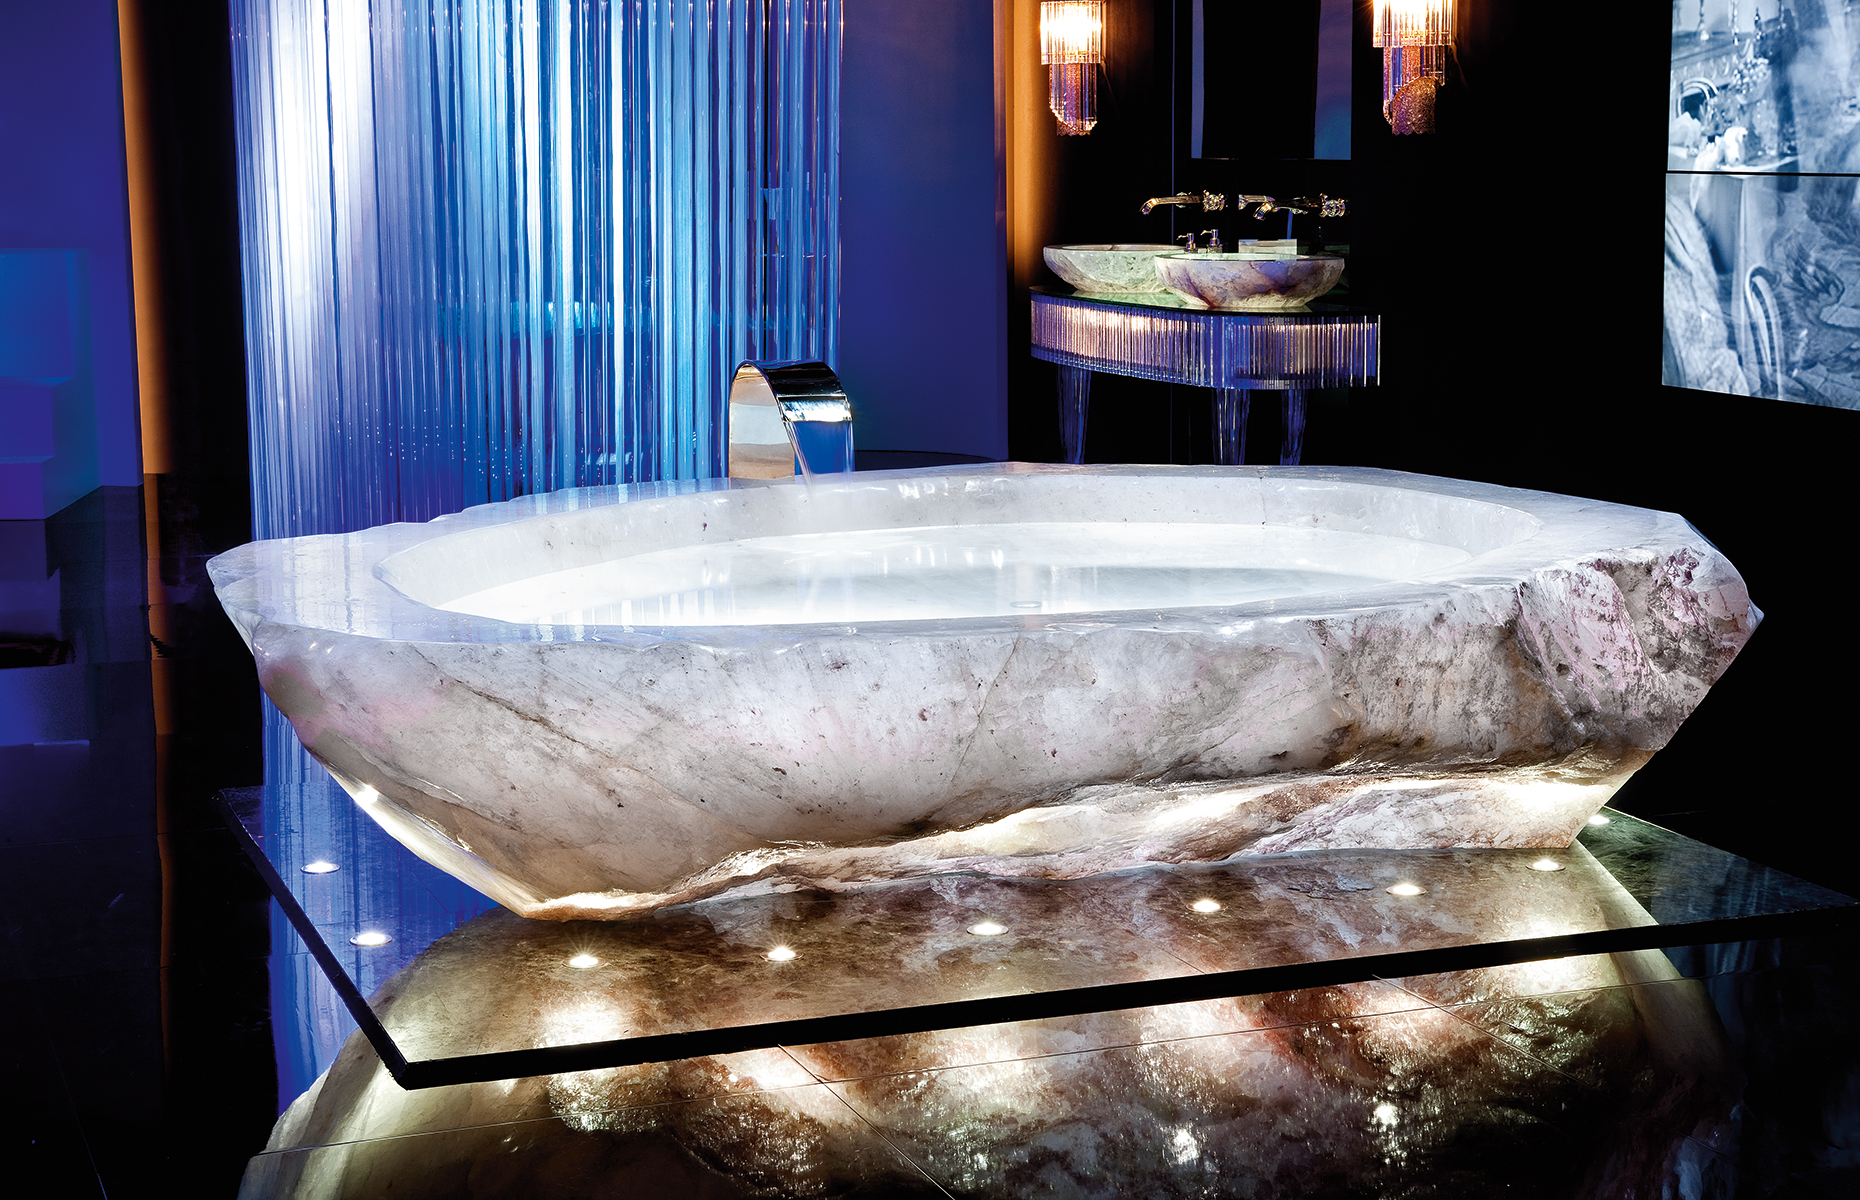 The rock crystal bath is said to be one of the most powerful healing stones. Image: XXII Carat Villas/Forum Group